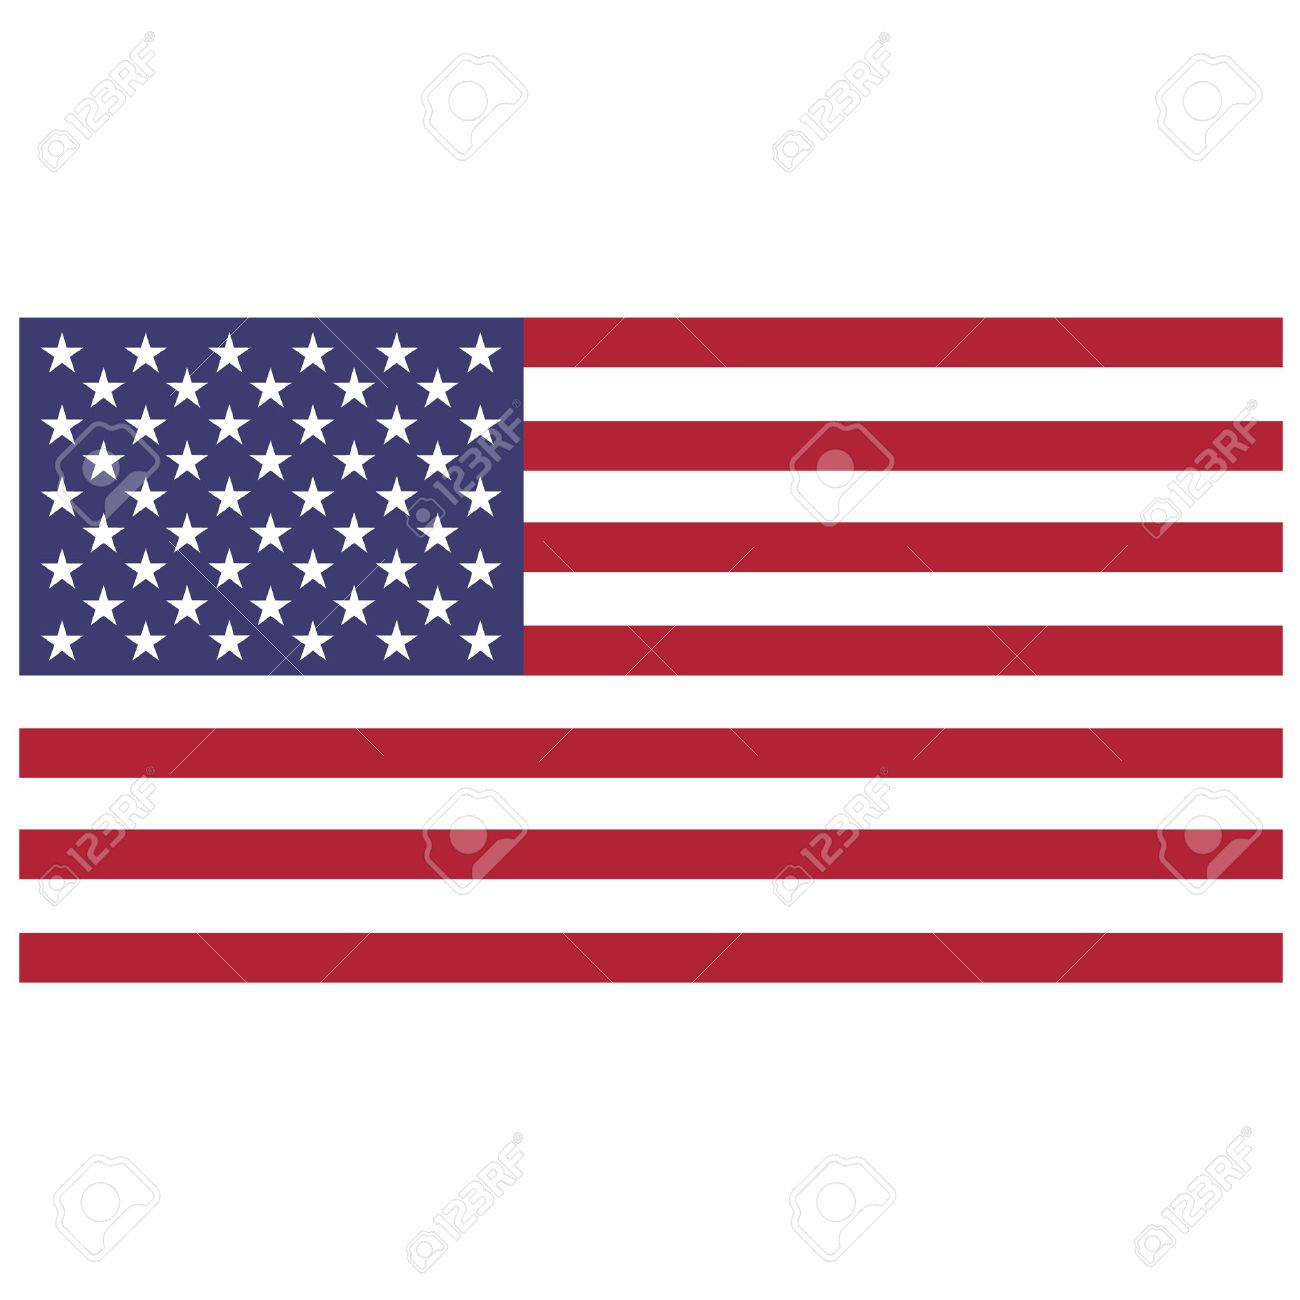 vector illustration of usa flag rectangular national flag of rh 123rf com usa flag vector file usa flag vector ai